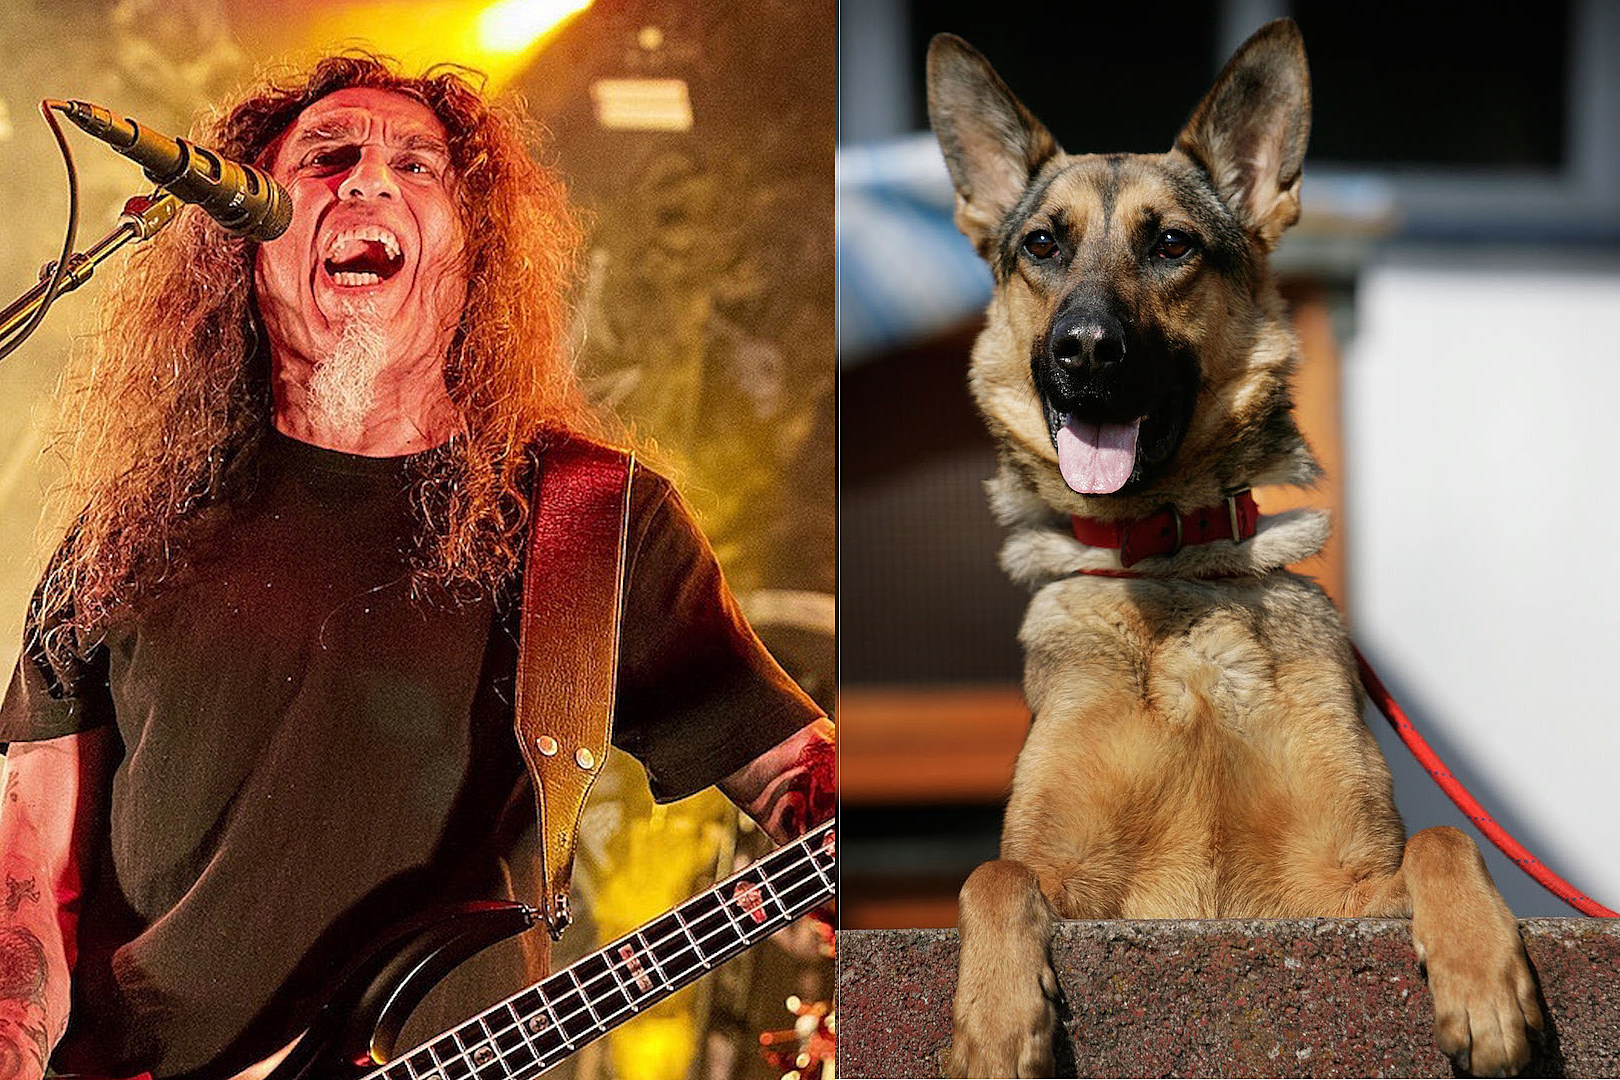 You Can Get Slayer, Judas Priest + More Themed Collars for Your Dog